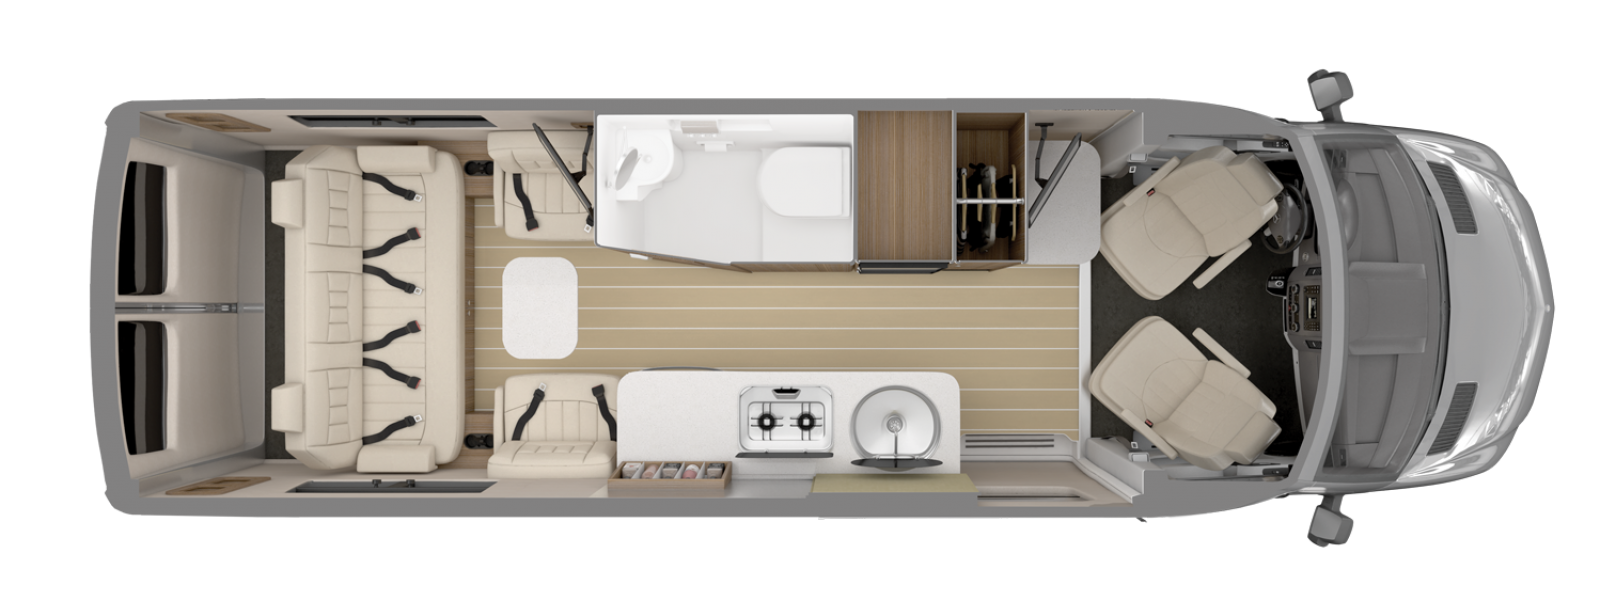 Airstream Interstate Grand Tour EXT Floorplan Tommy Bahama